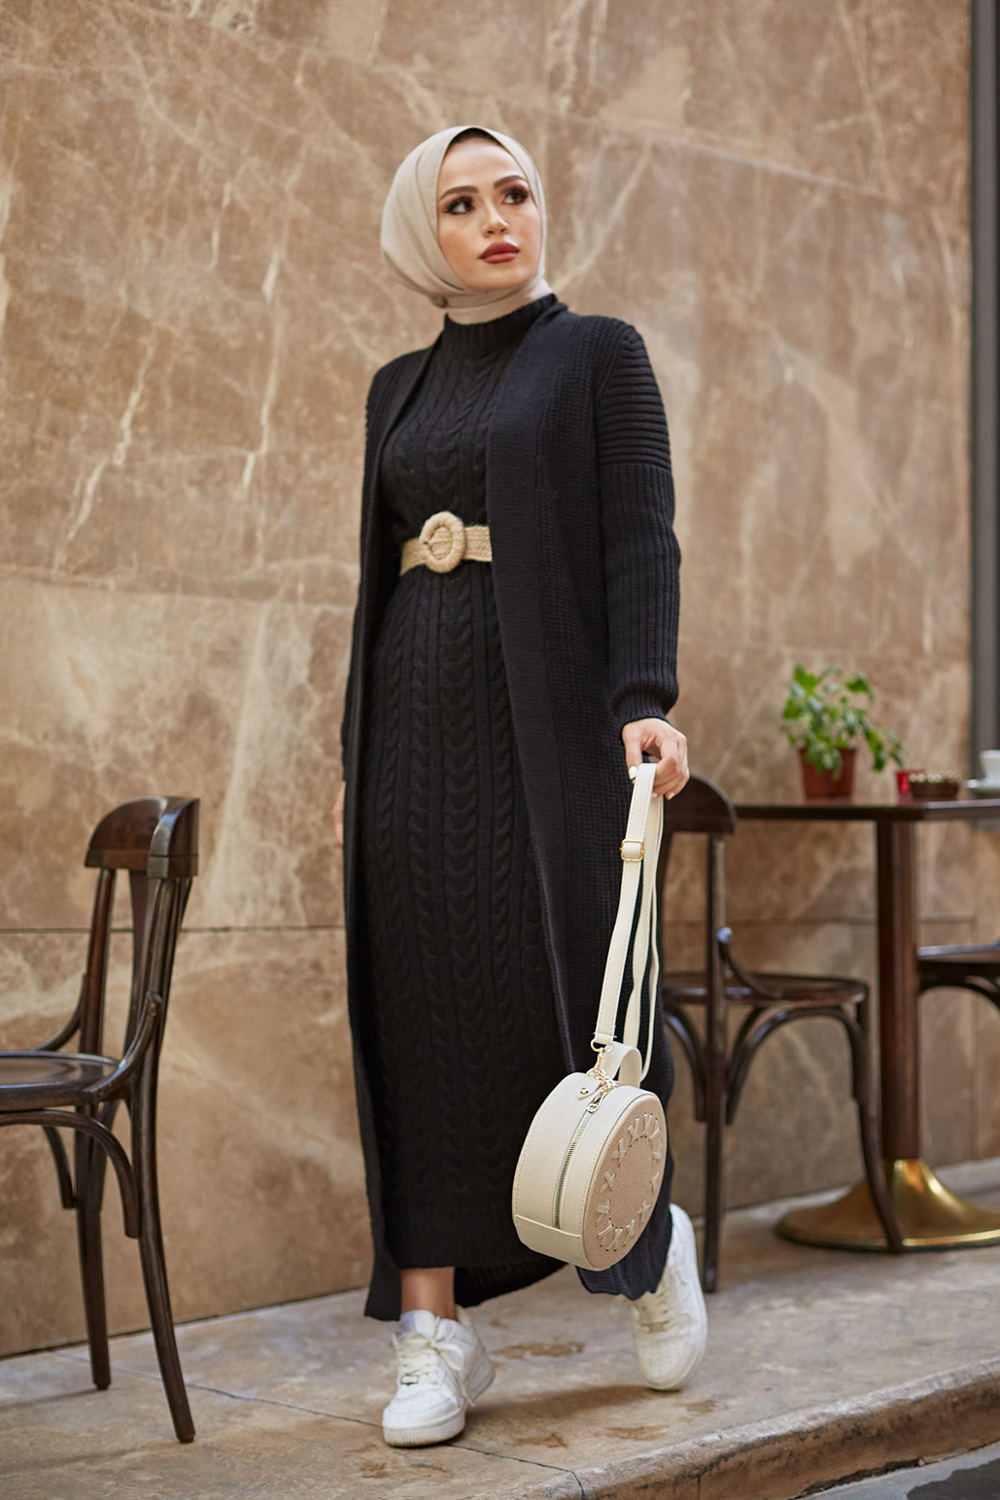 New Version 2 Pieces Woman Dress Knitted Suit Long Cardigan and Maxi dress Muslim Fashion